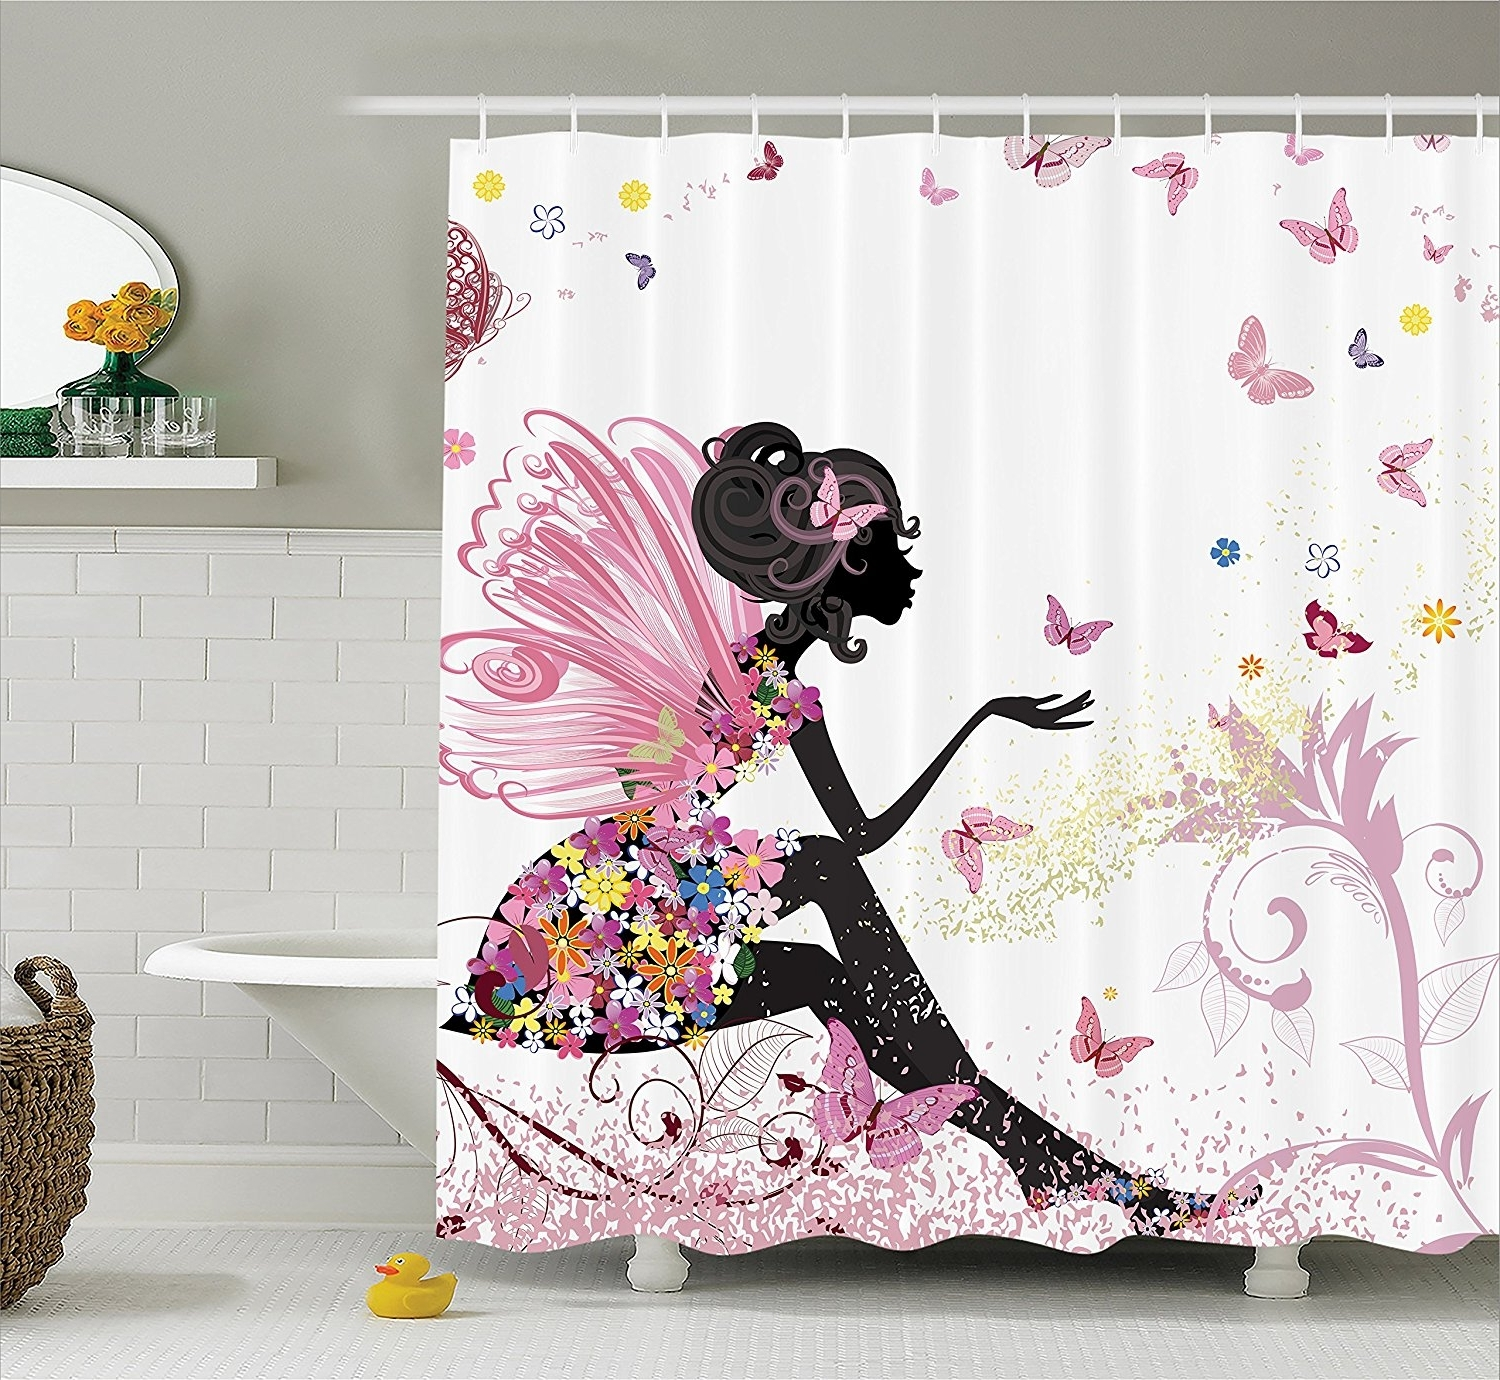 Famous Fabric Dress Wall Art In Pink Butterfly Girl With Floral Dress Flower Design Fairy Angel (View 6 of 15)